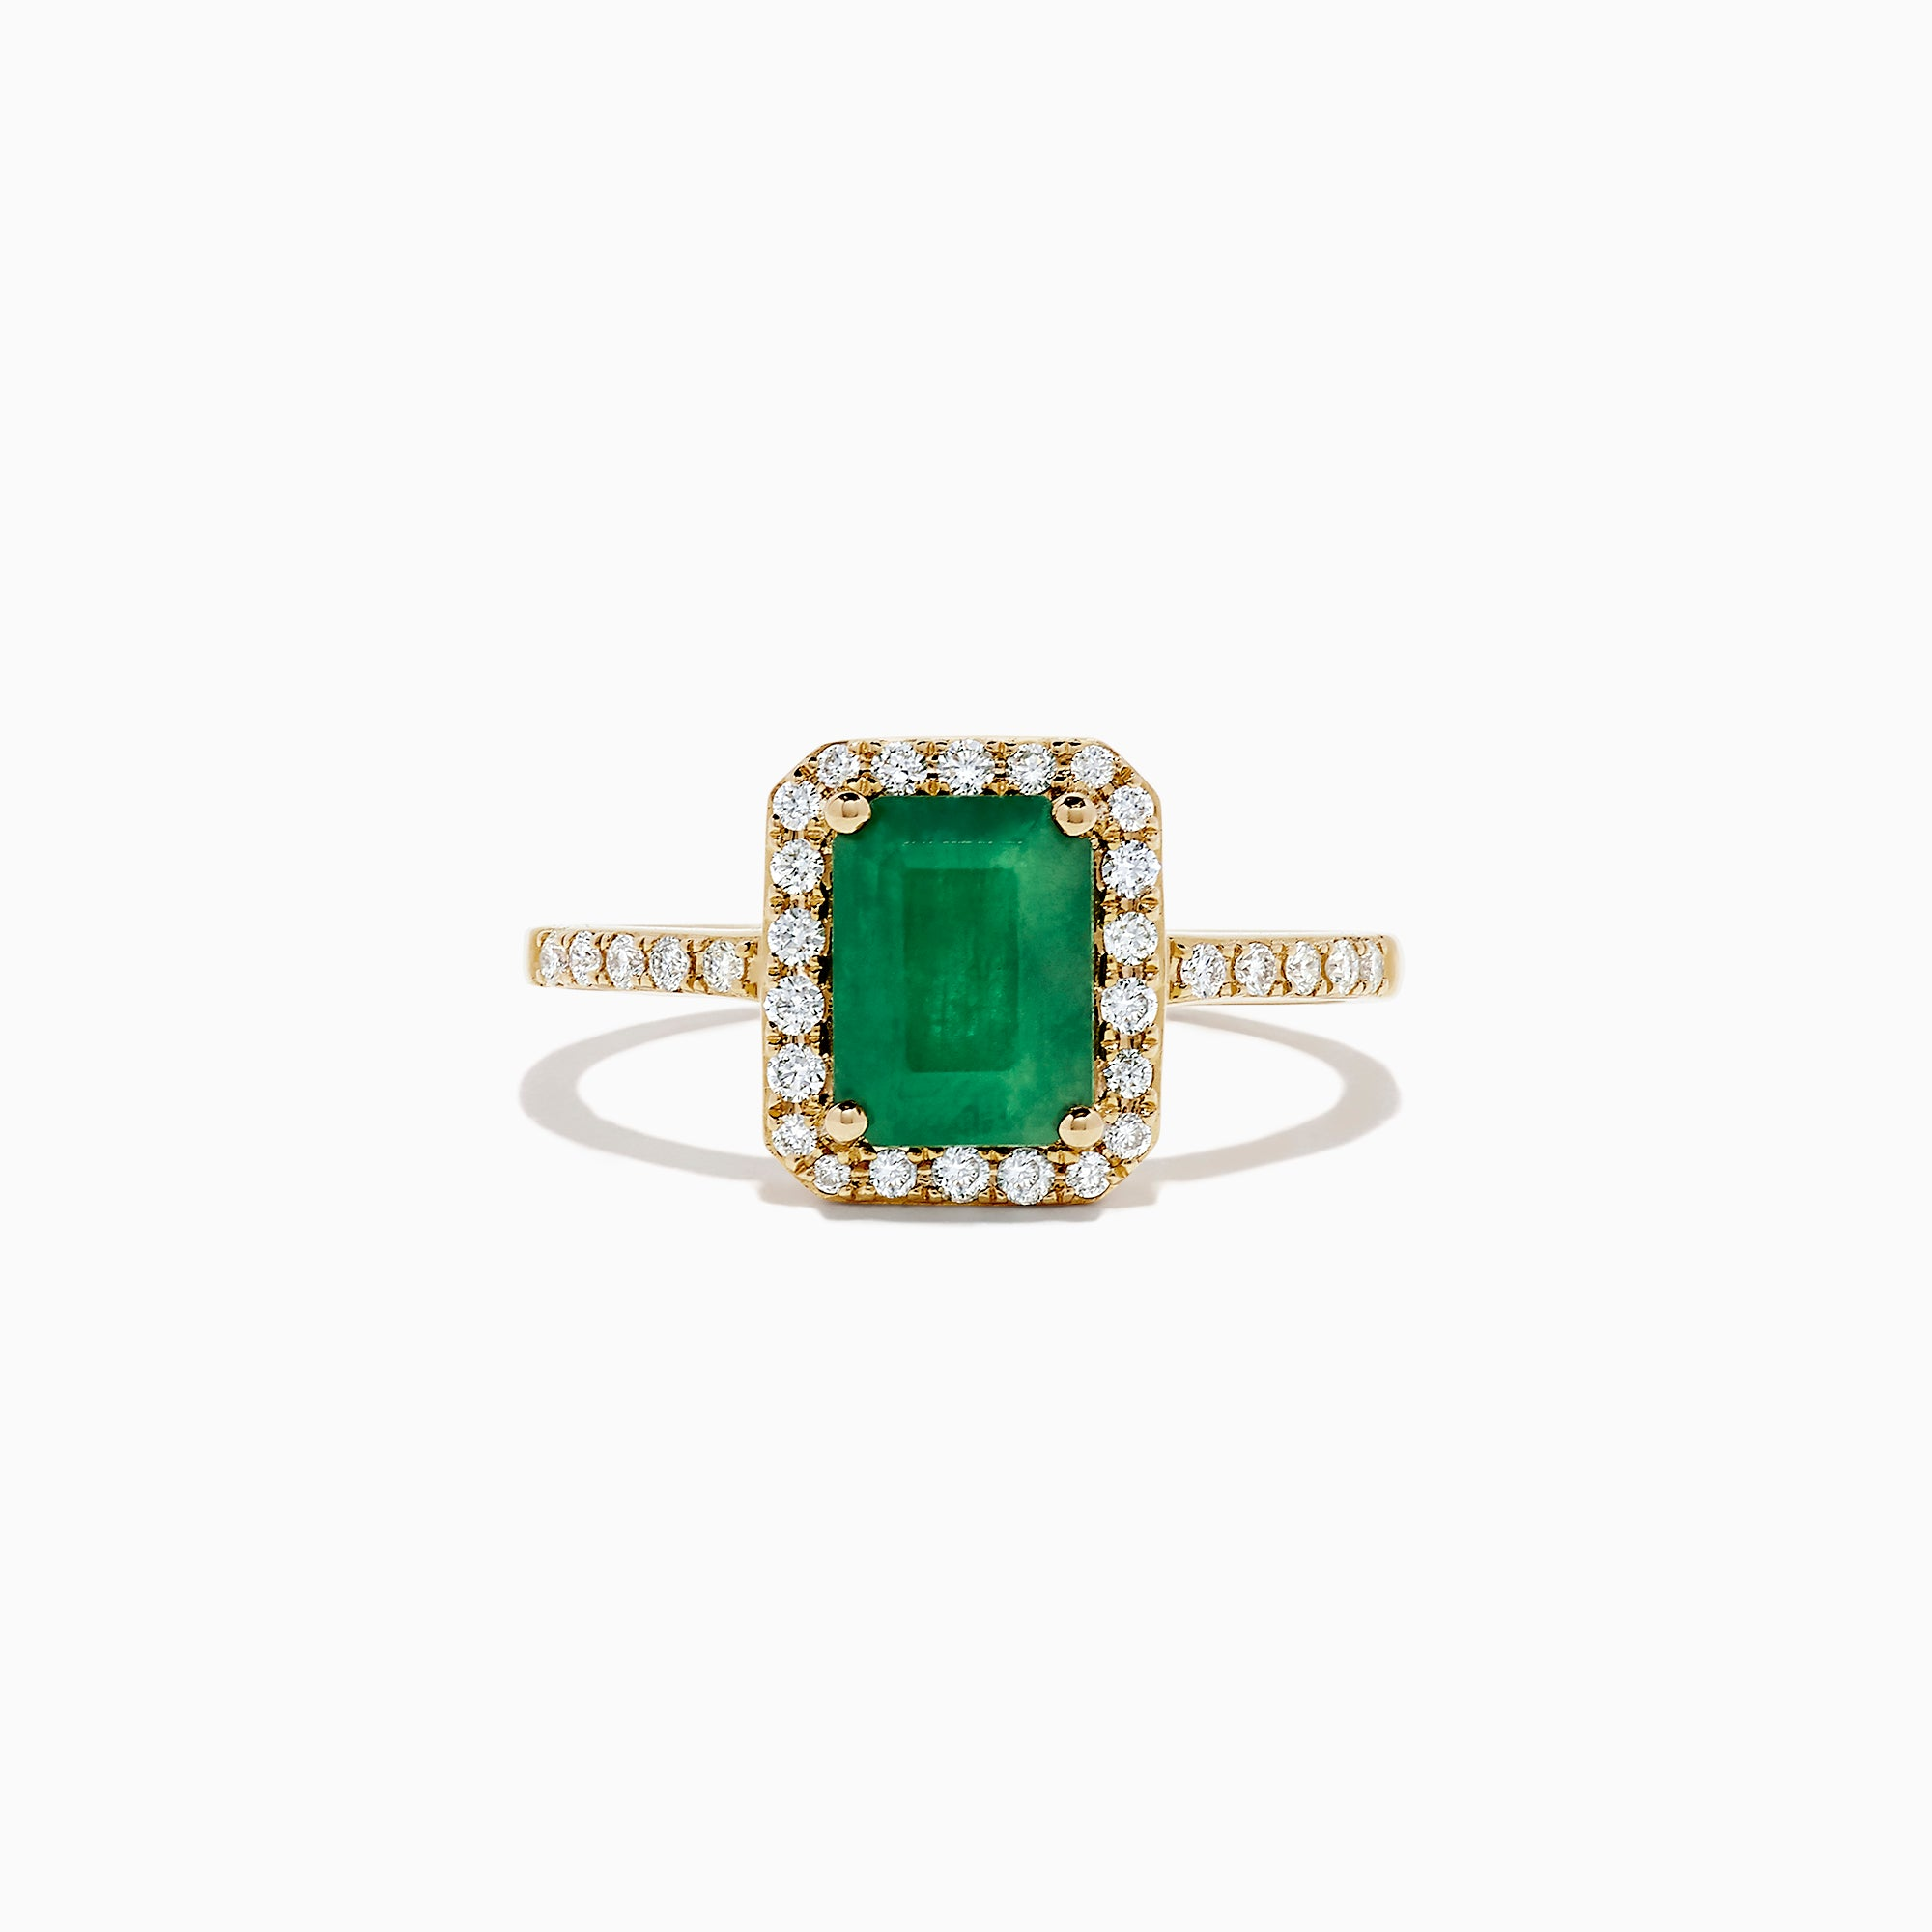 Effy Brasilica 14K Yellow Gold Emerald and Diamond Ring, 1.69 TCW